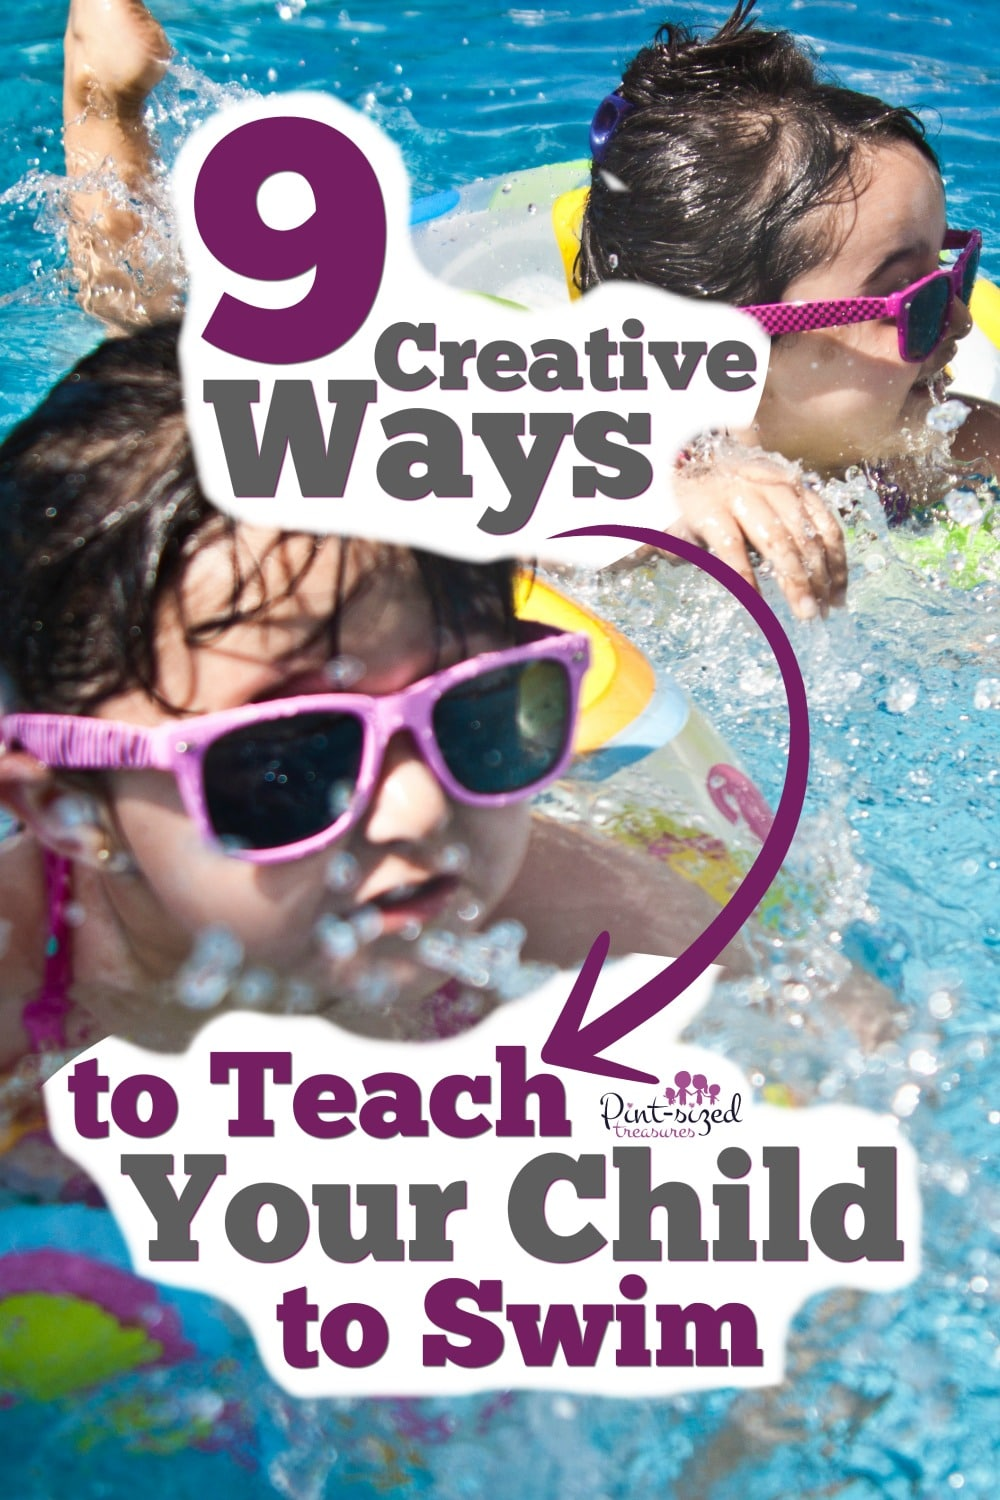 Teach your child to swim with these creative ideas